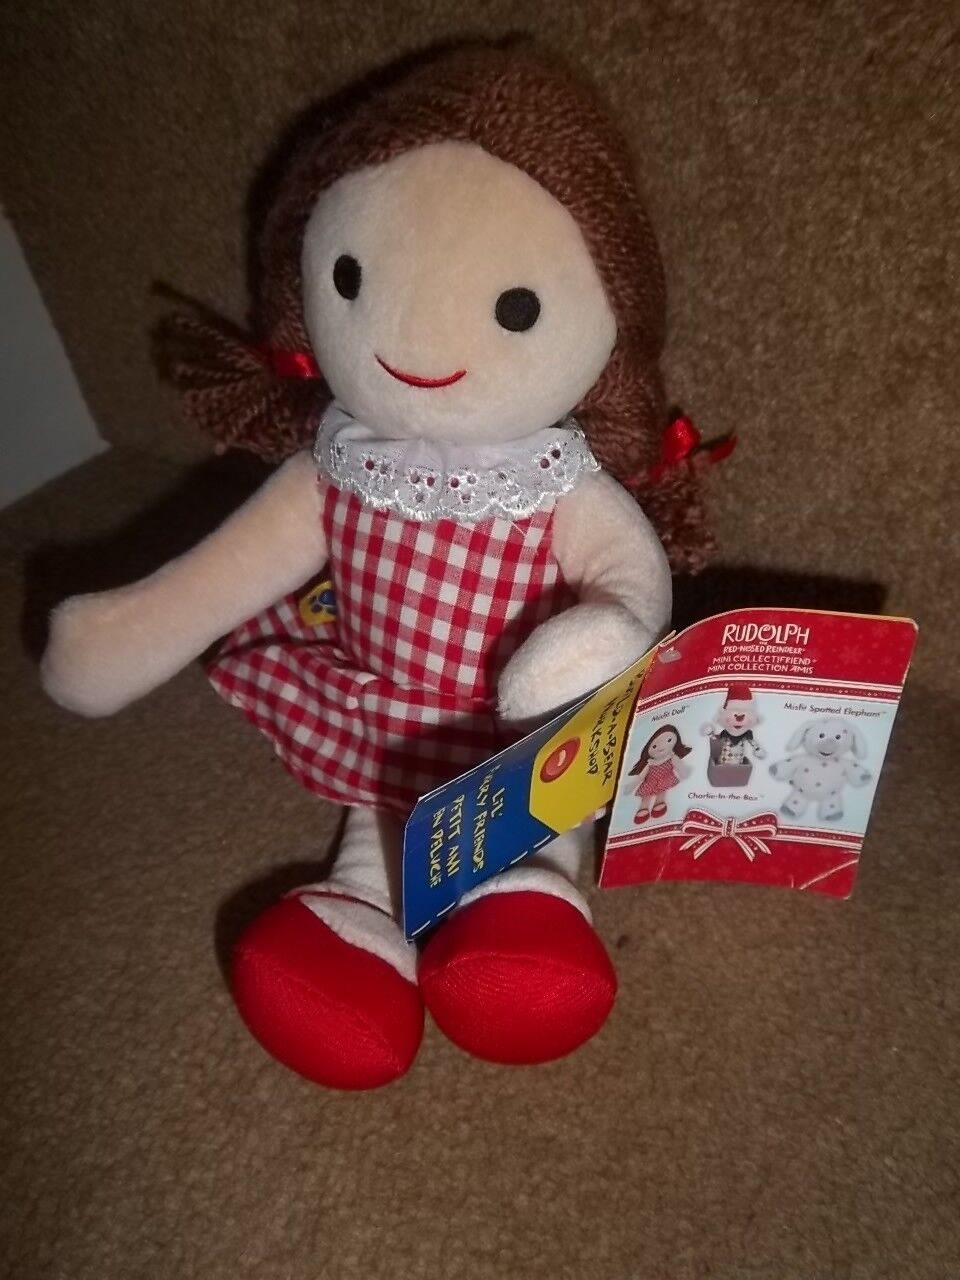 NEW 2010 RUDOLPH MISFIT DOLL BUILD A BEAR MINI COLLECTION SOFT TOY PLUSH